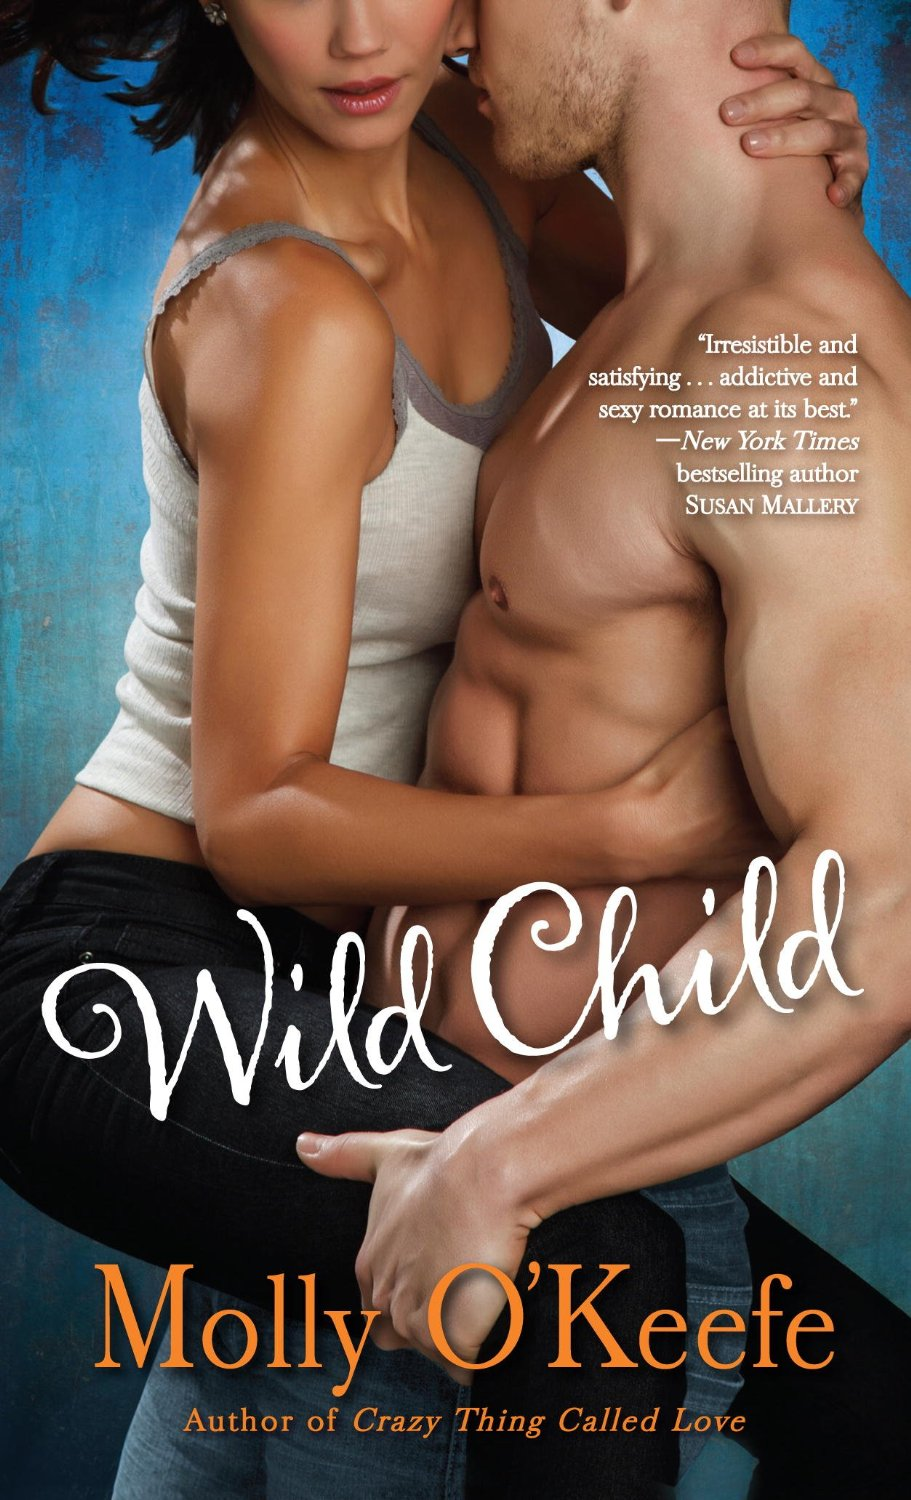 Wild Child by Molly O'Keefe | Reviewed on Clear Eyes, Full Shelves | cleareyesfullshelves.com